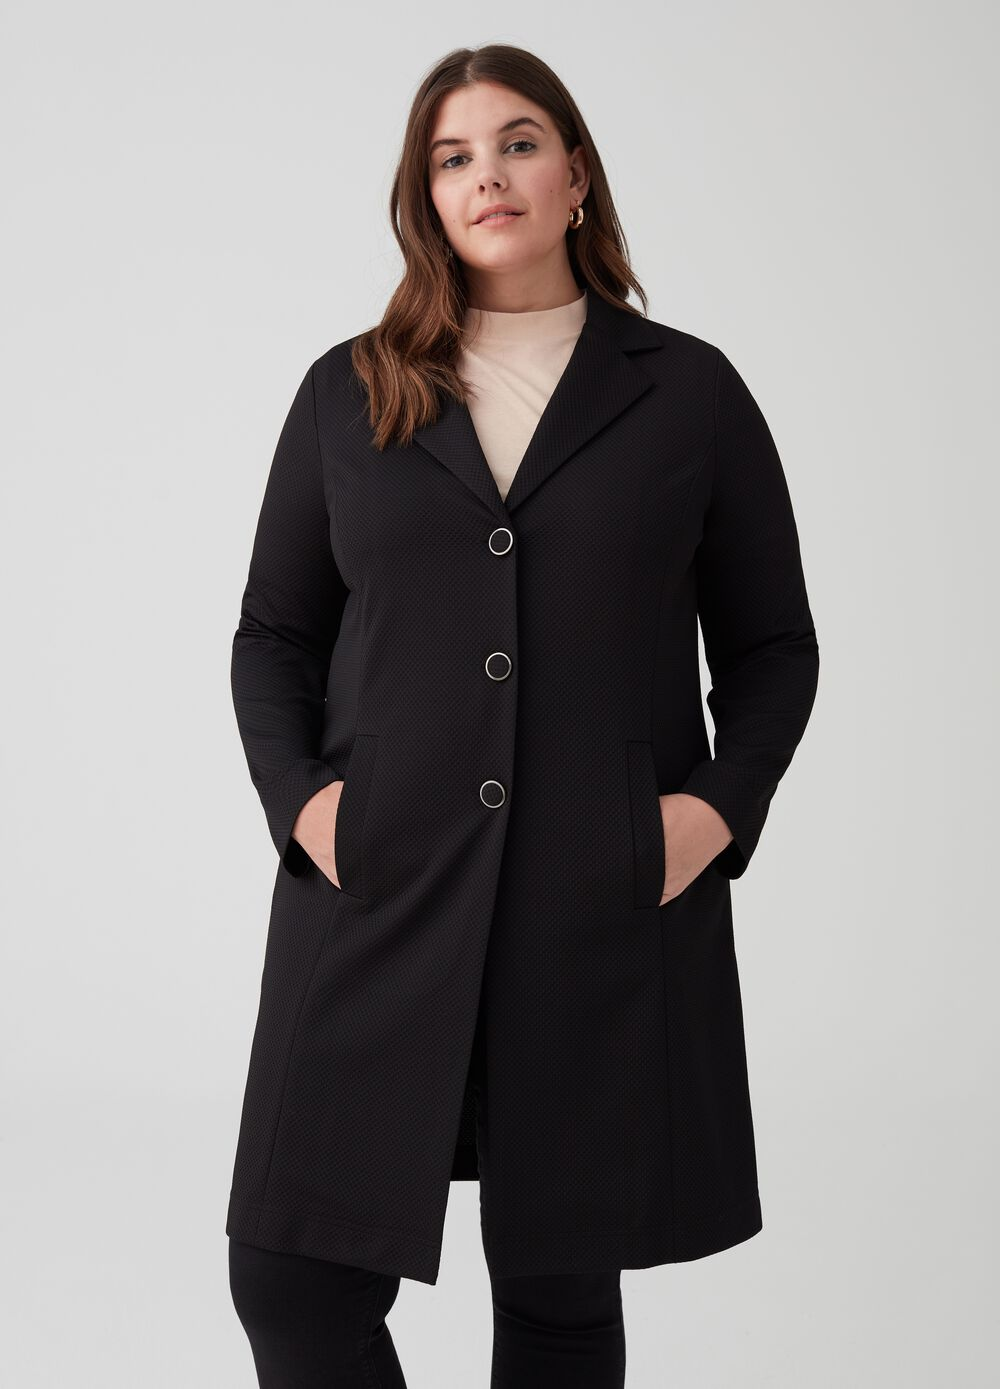 Curvy coat with lapels and pockets